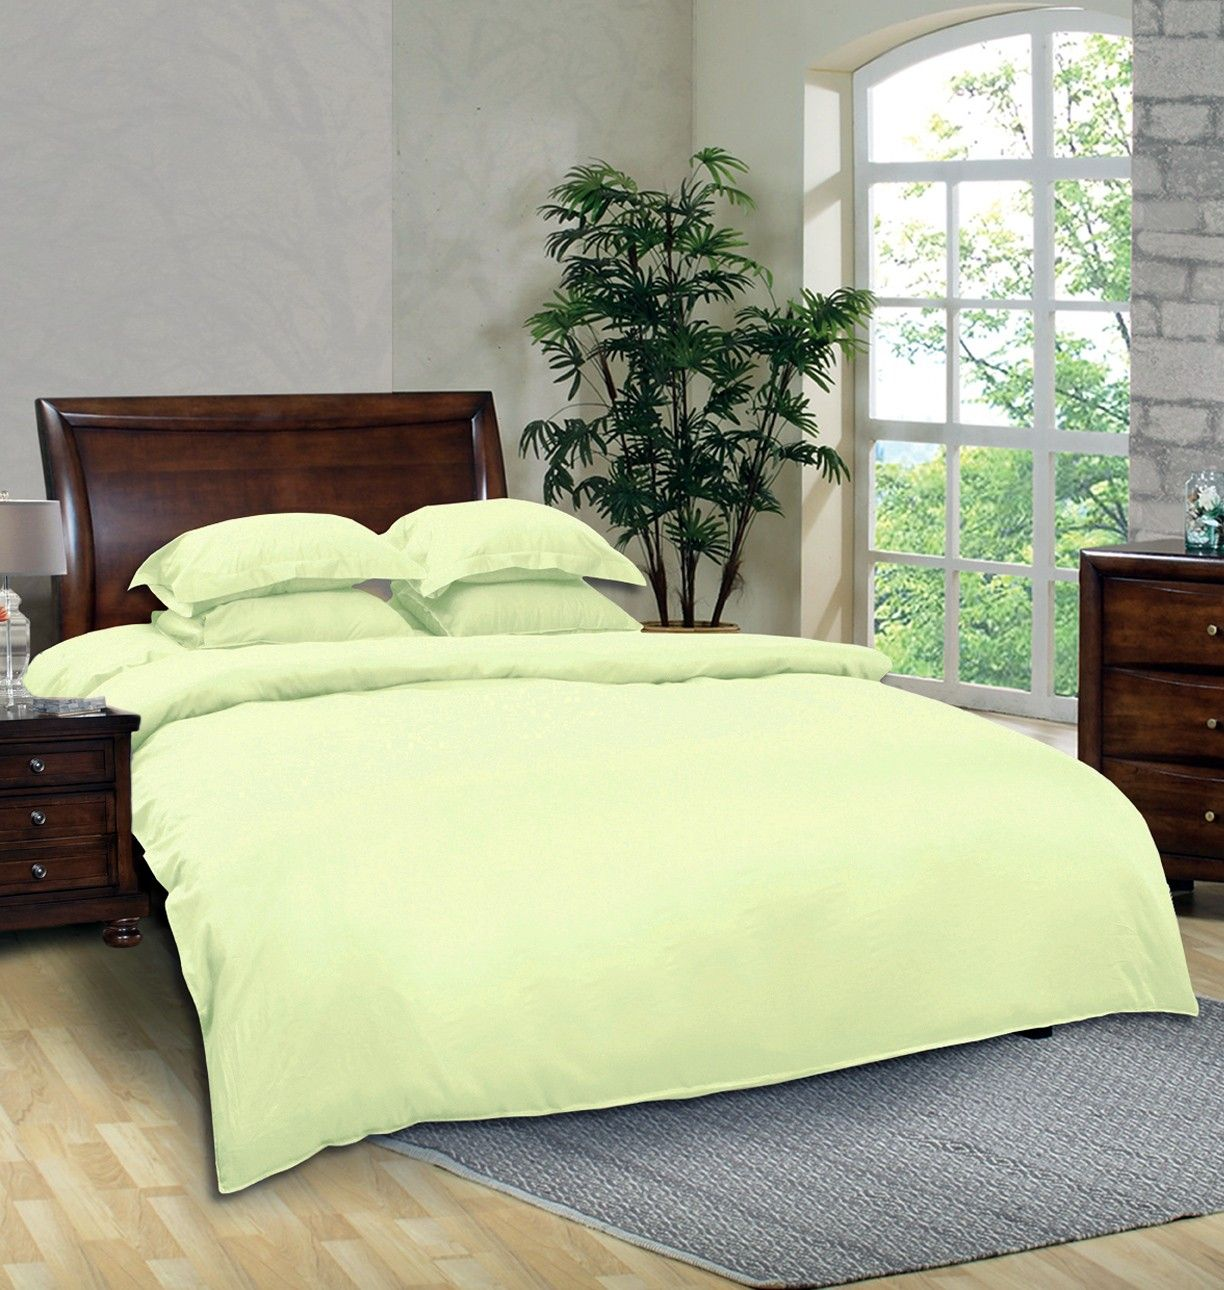 Mcc 850 Tpi Bed Linen And Bath Linen Pinterest Linen Bedding